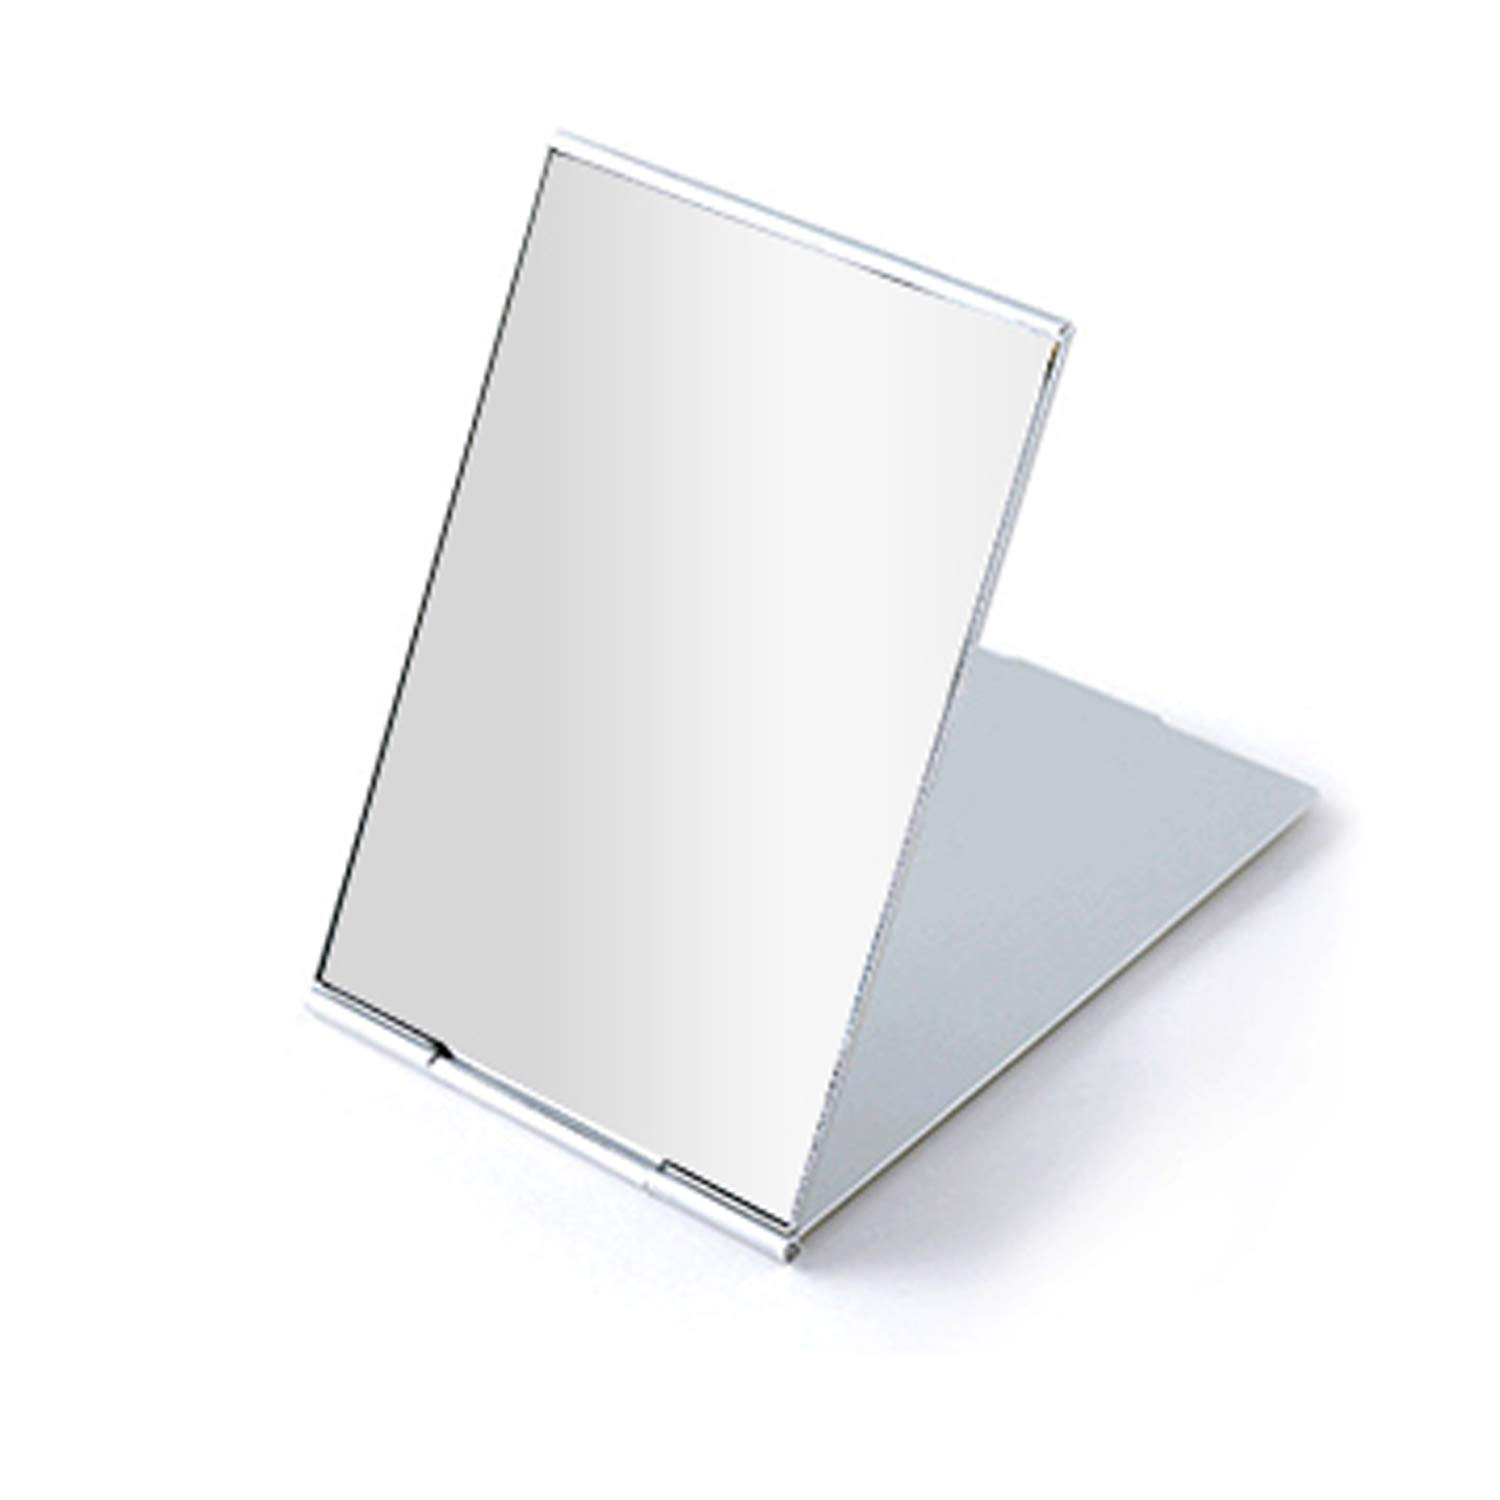 Portable Folding Mirror, Ultra-Slim Durable Makeup Mirror, Small Tabletop Mirror for Travel,Aluminum Shell, Mini Size, 3.3""